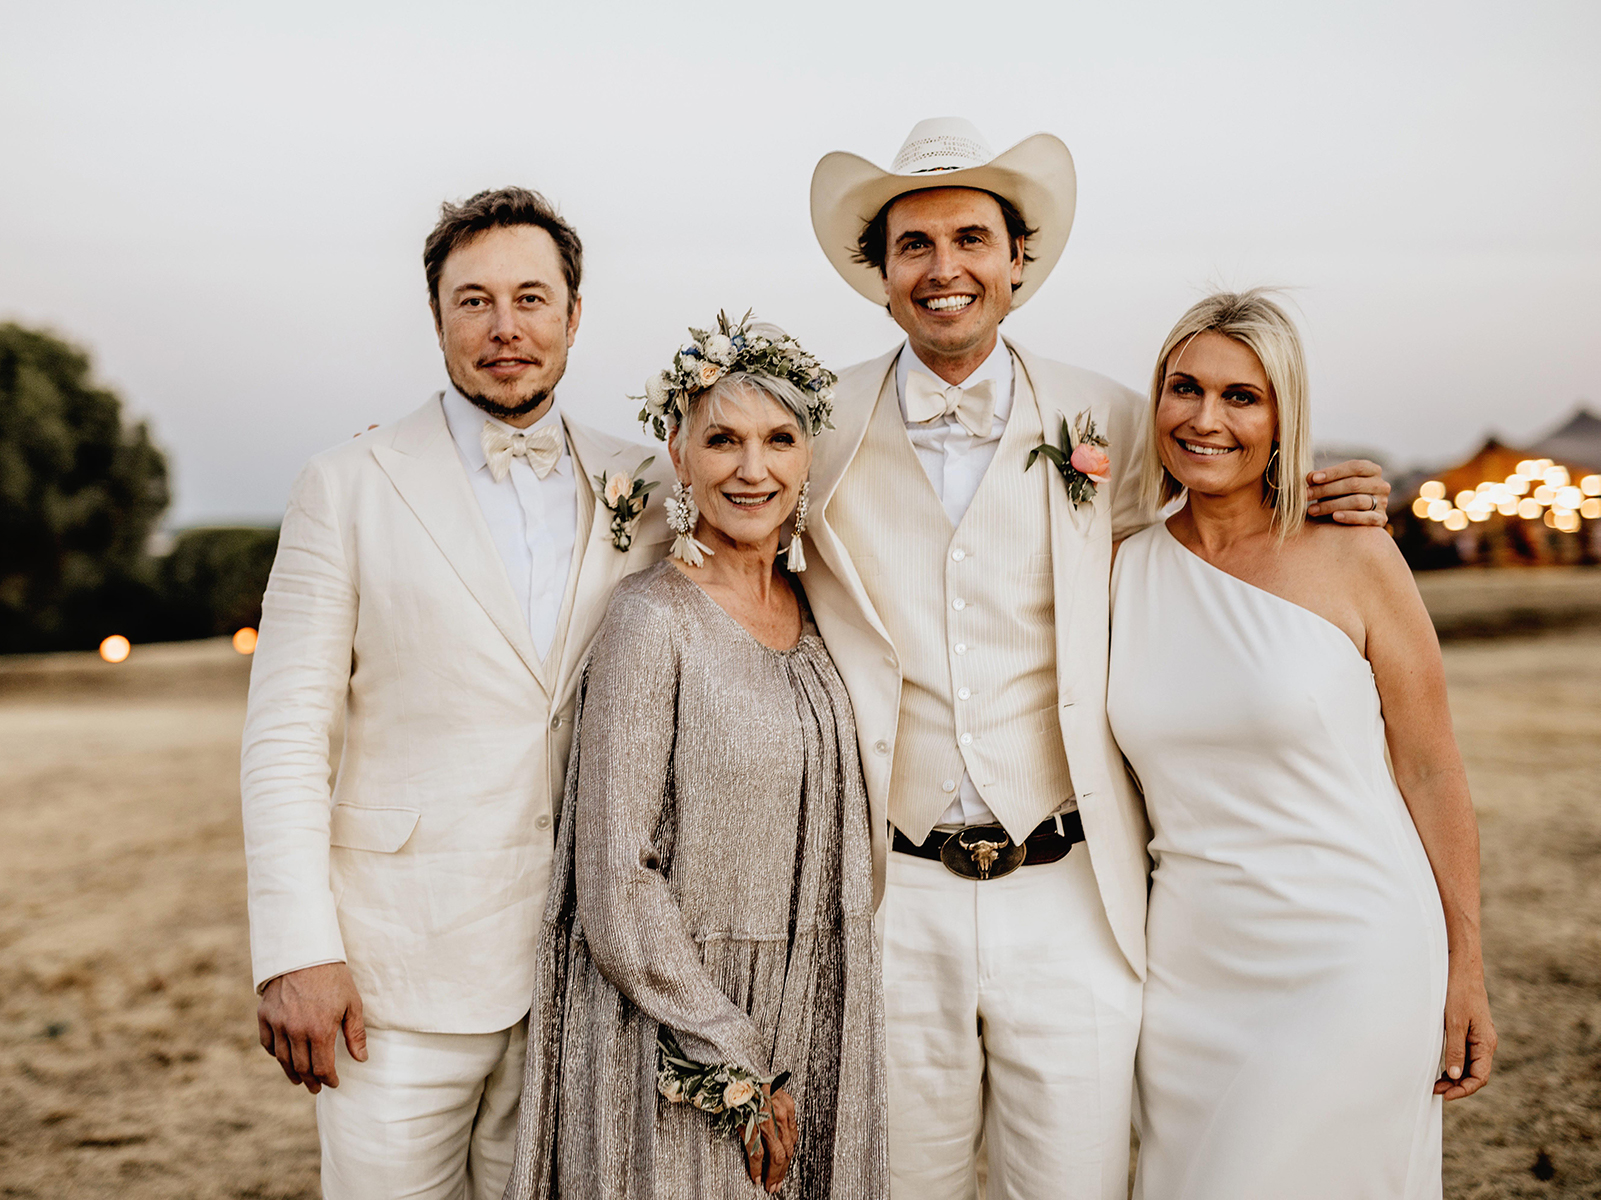 Does Kimbal Musk Have the Formula to Guide Us Through COVID-19?